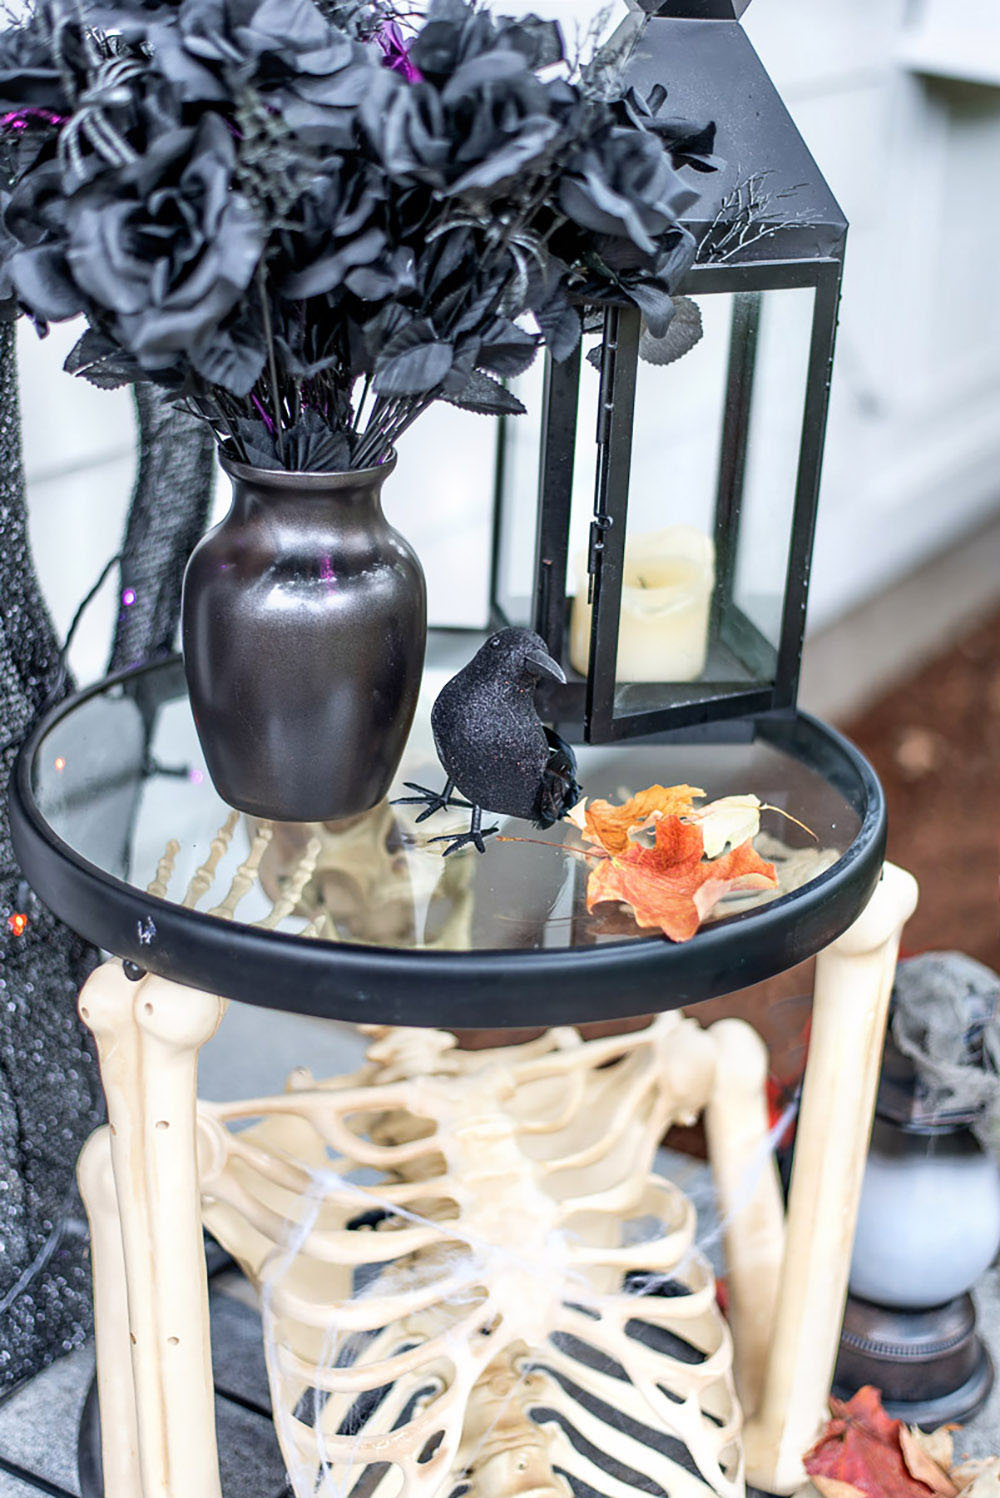 A skeleton side table with black roses and lantern on top